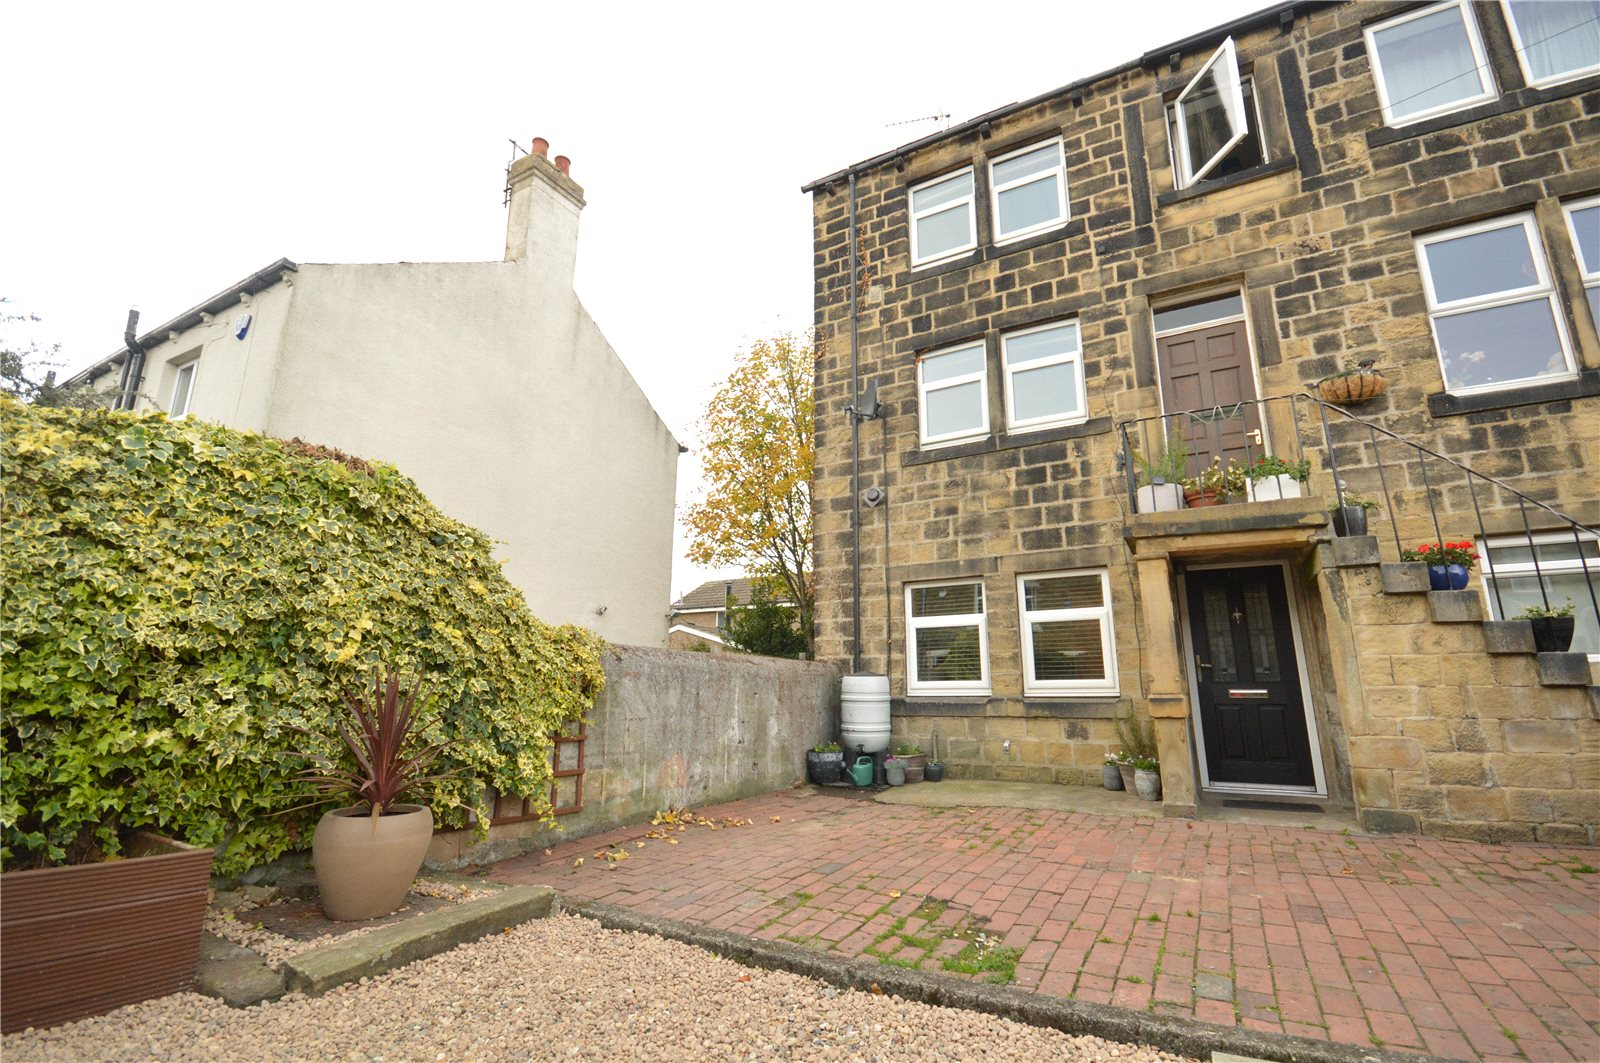 Property for sale in Calverley, exterior of semi detached home